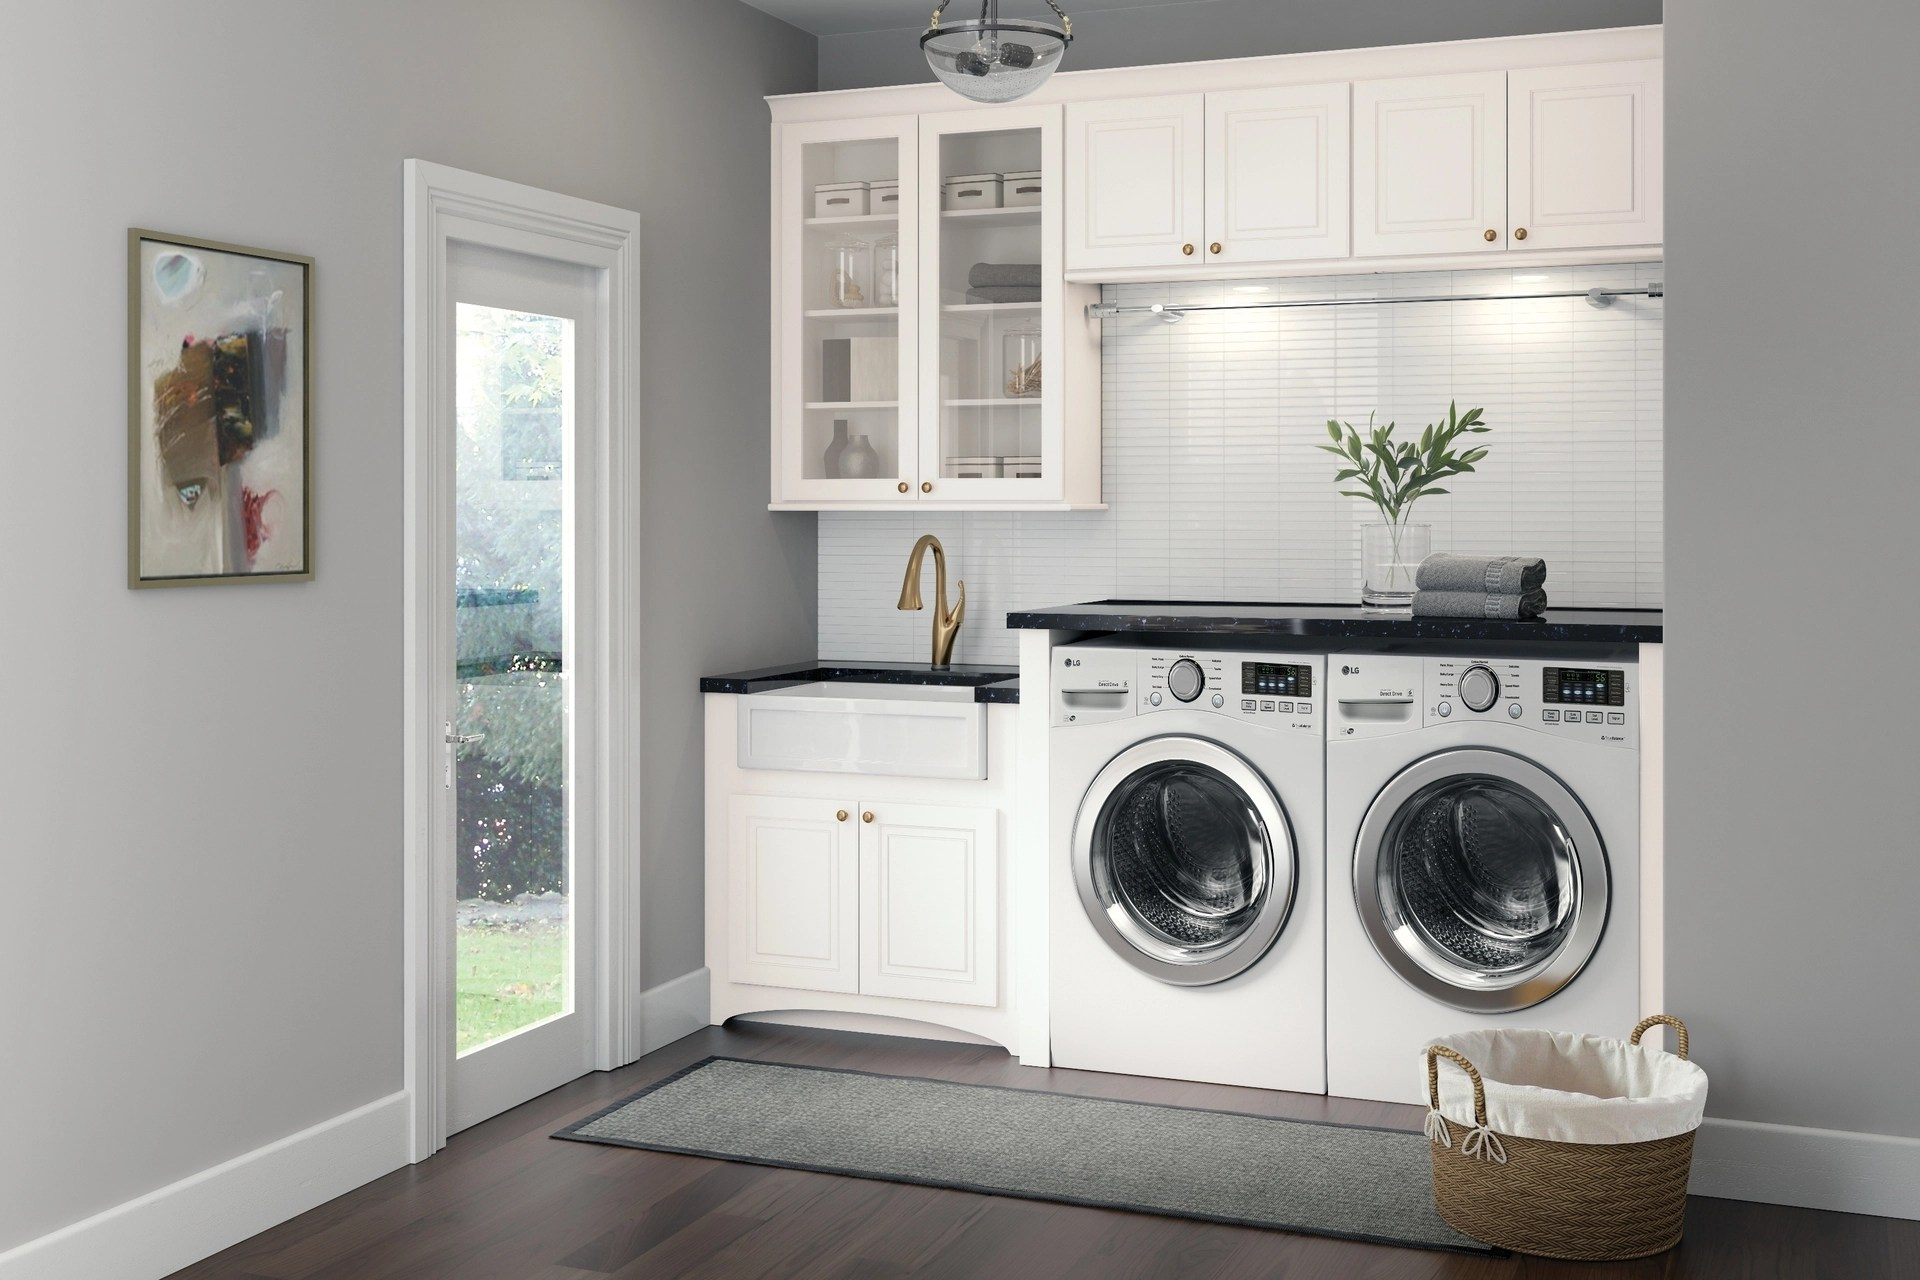 Cardell Kitchen Cabinets - Stubben in White Laundry Room on Laundry Room Cabinets  id=86356